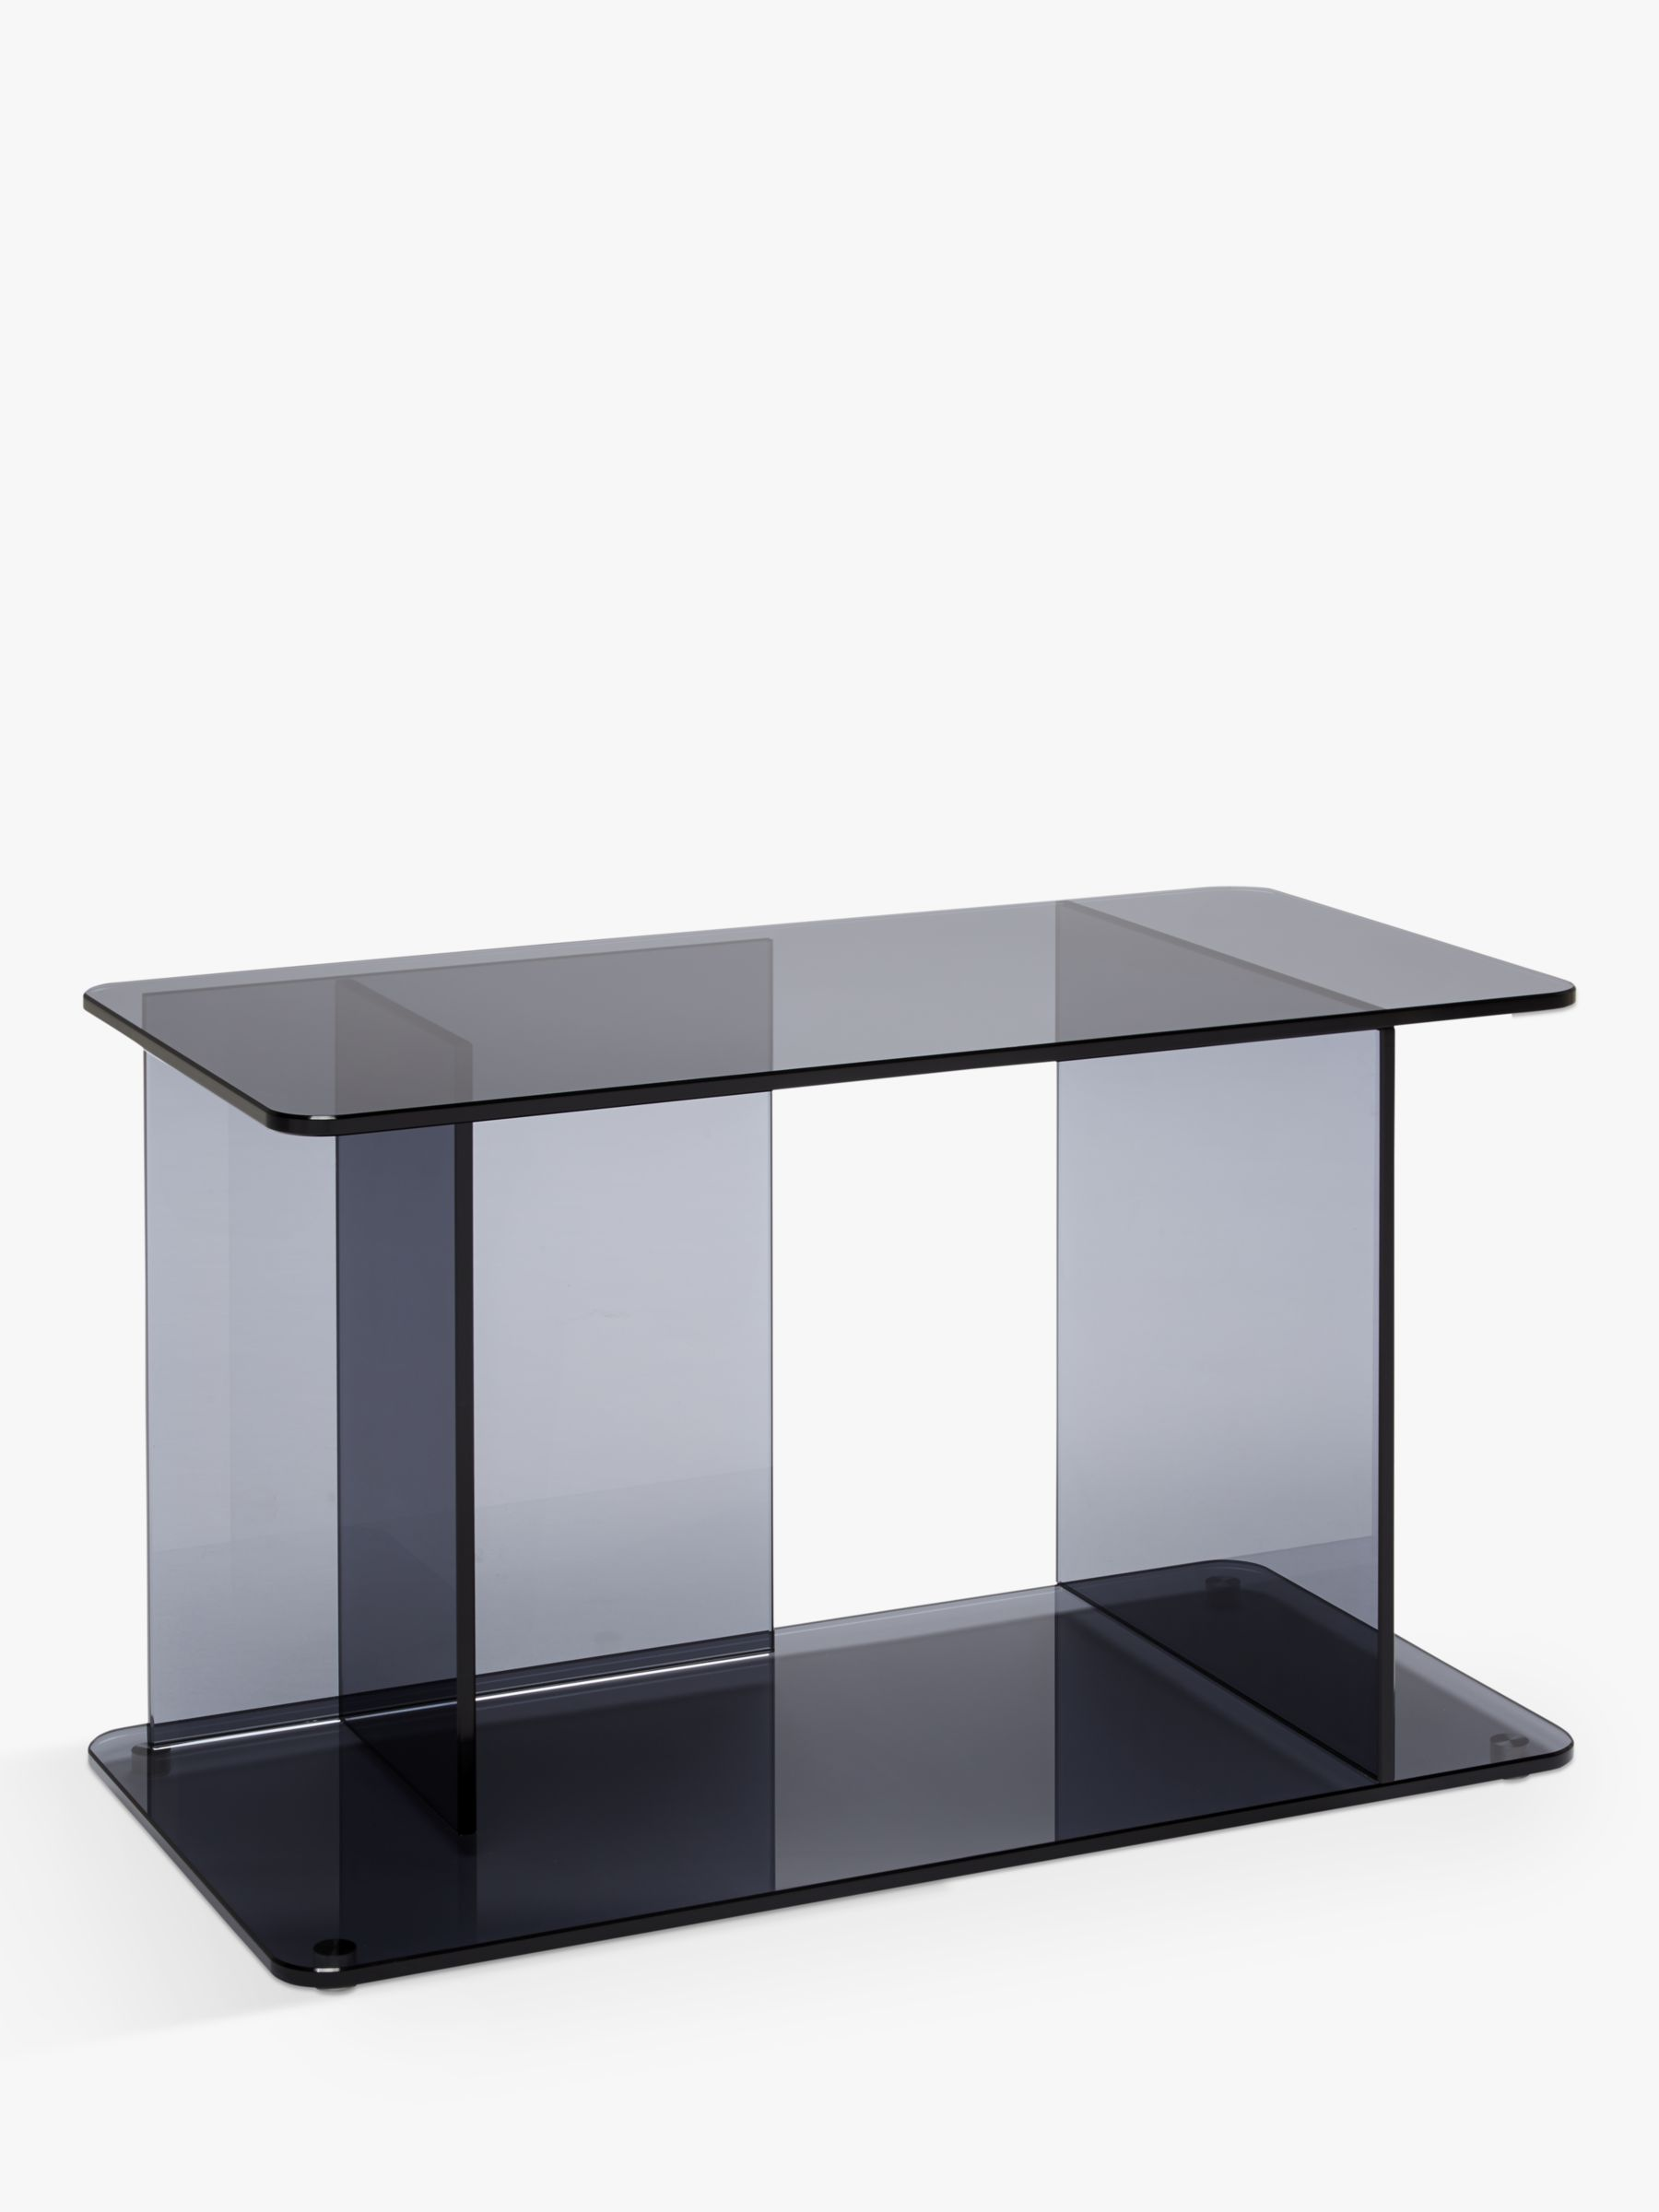 Case Matthew Hilton for Case Lucent Large Side Table, Smoke